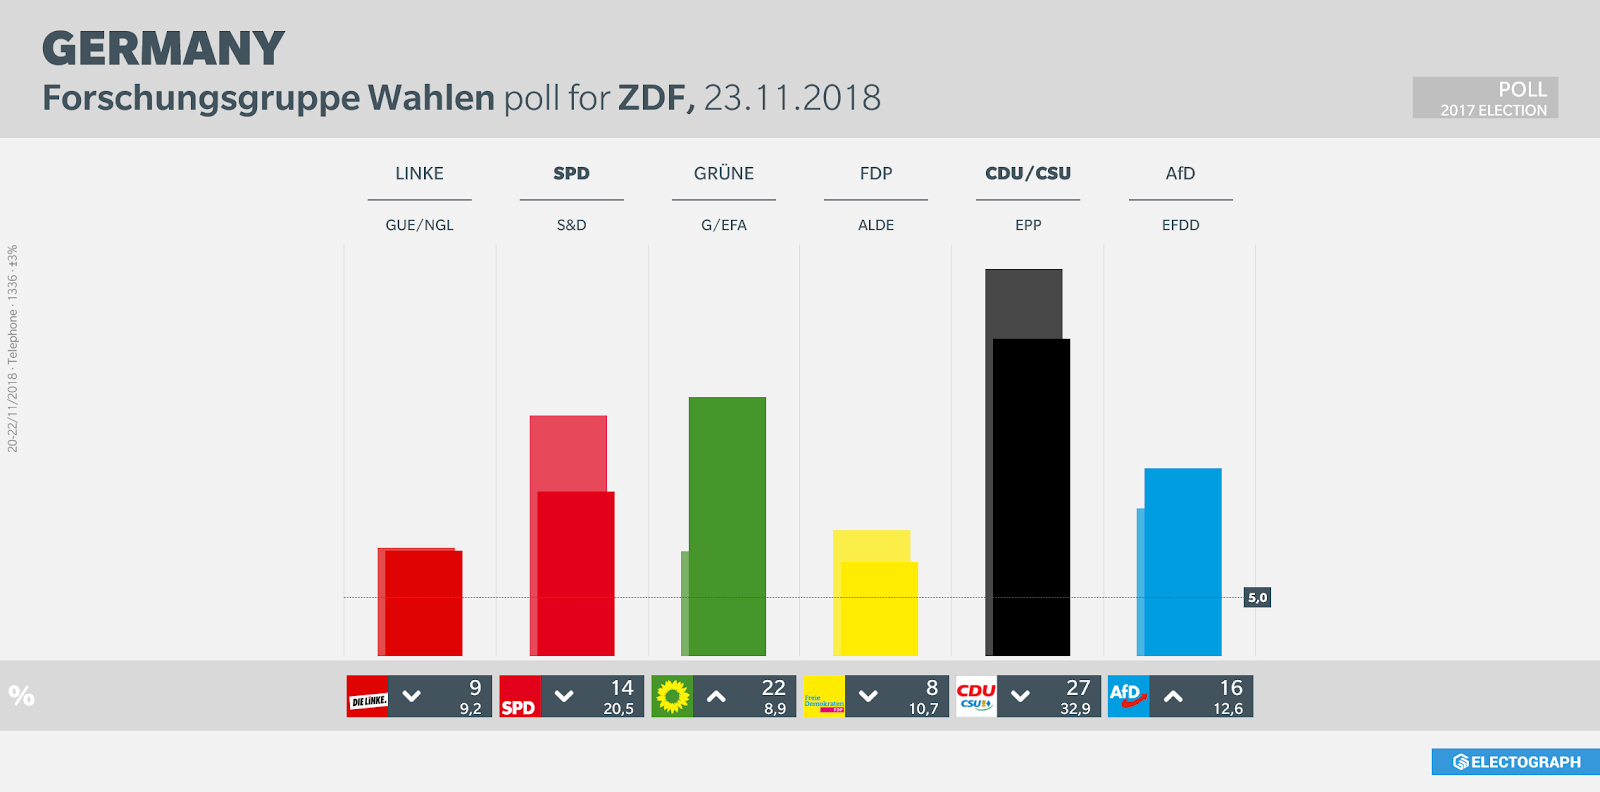 GERMANY: Forschungsgruppe Wahlen poll chart for ZDF, 23 November 2018